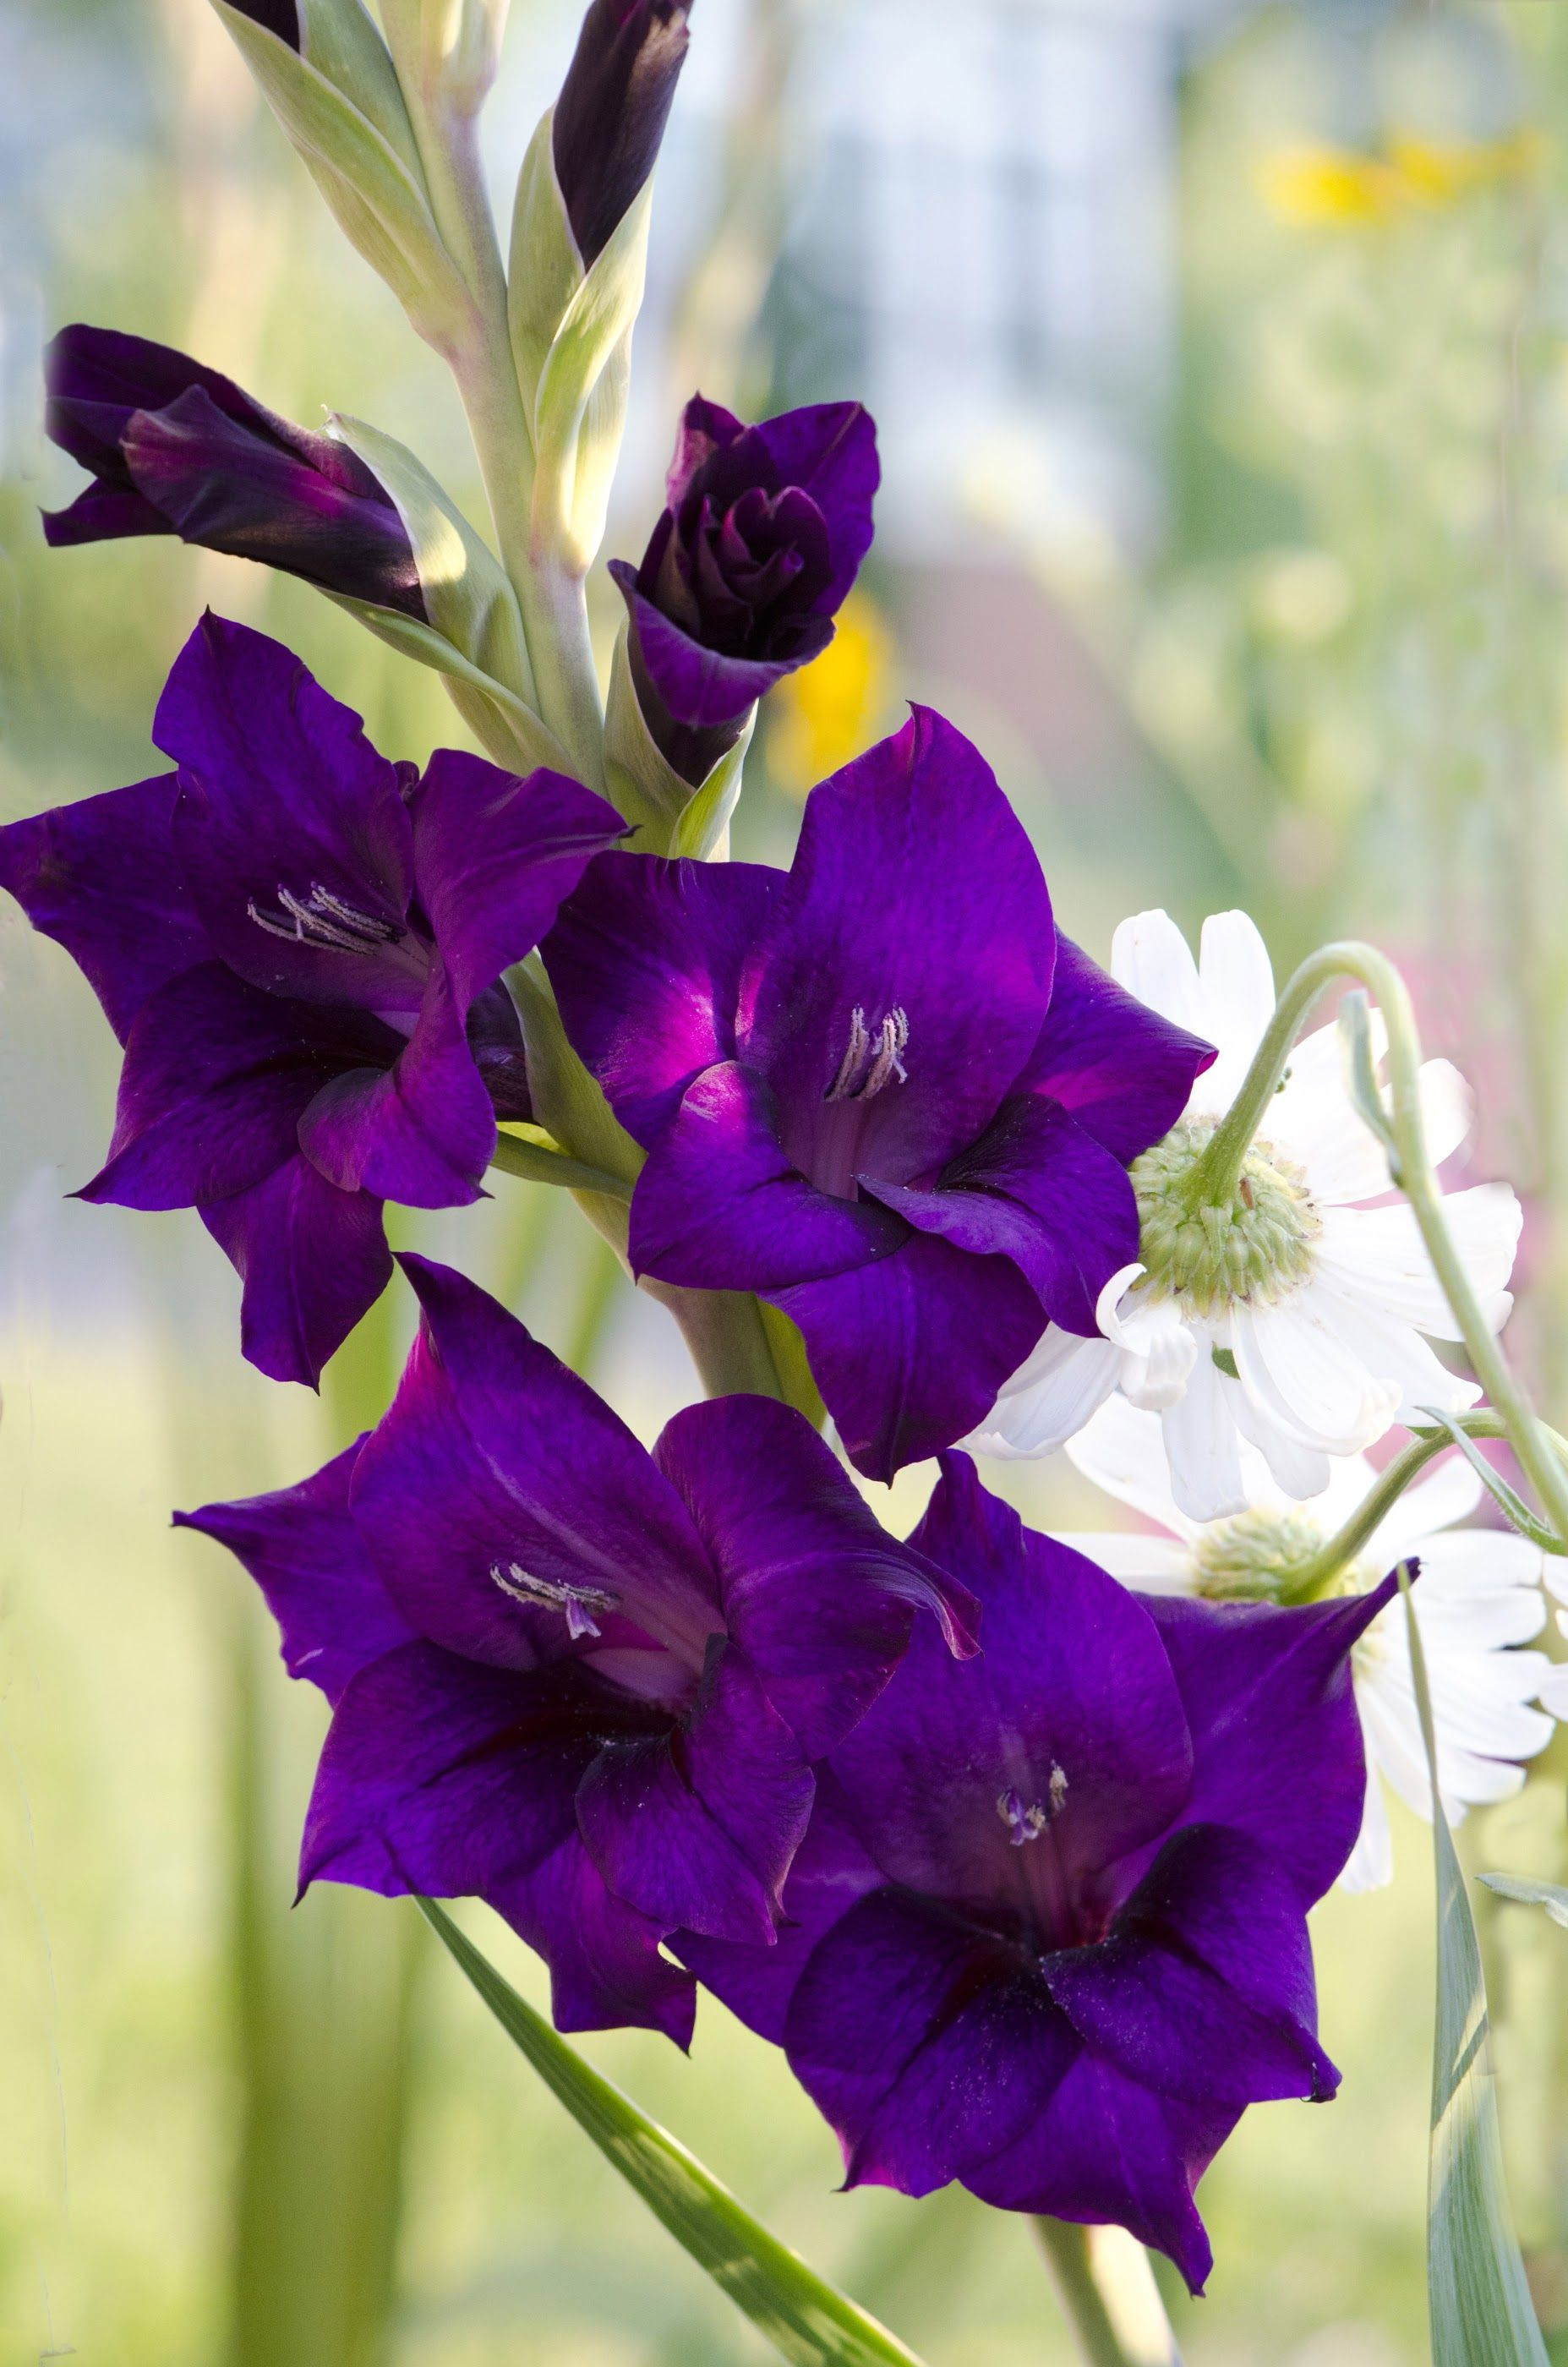 August Birth Flowers Are The Gladiolus And Poppy Gladiolus Meaning Of Flowers Is Preparedness Strength S August Birth Flower Birth Flowers Gladiolus Flower